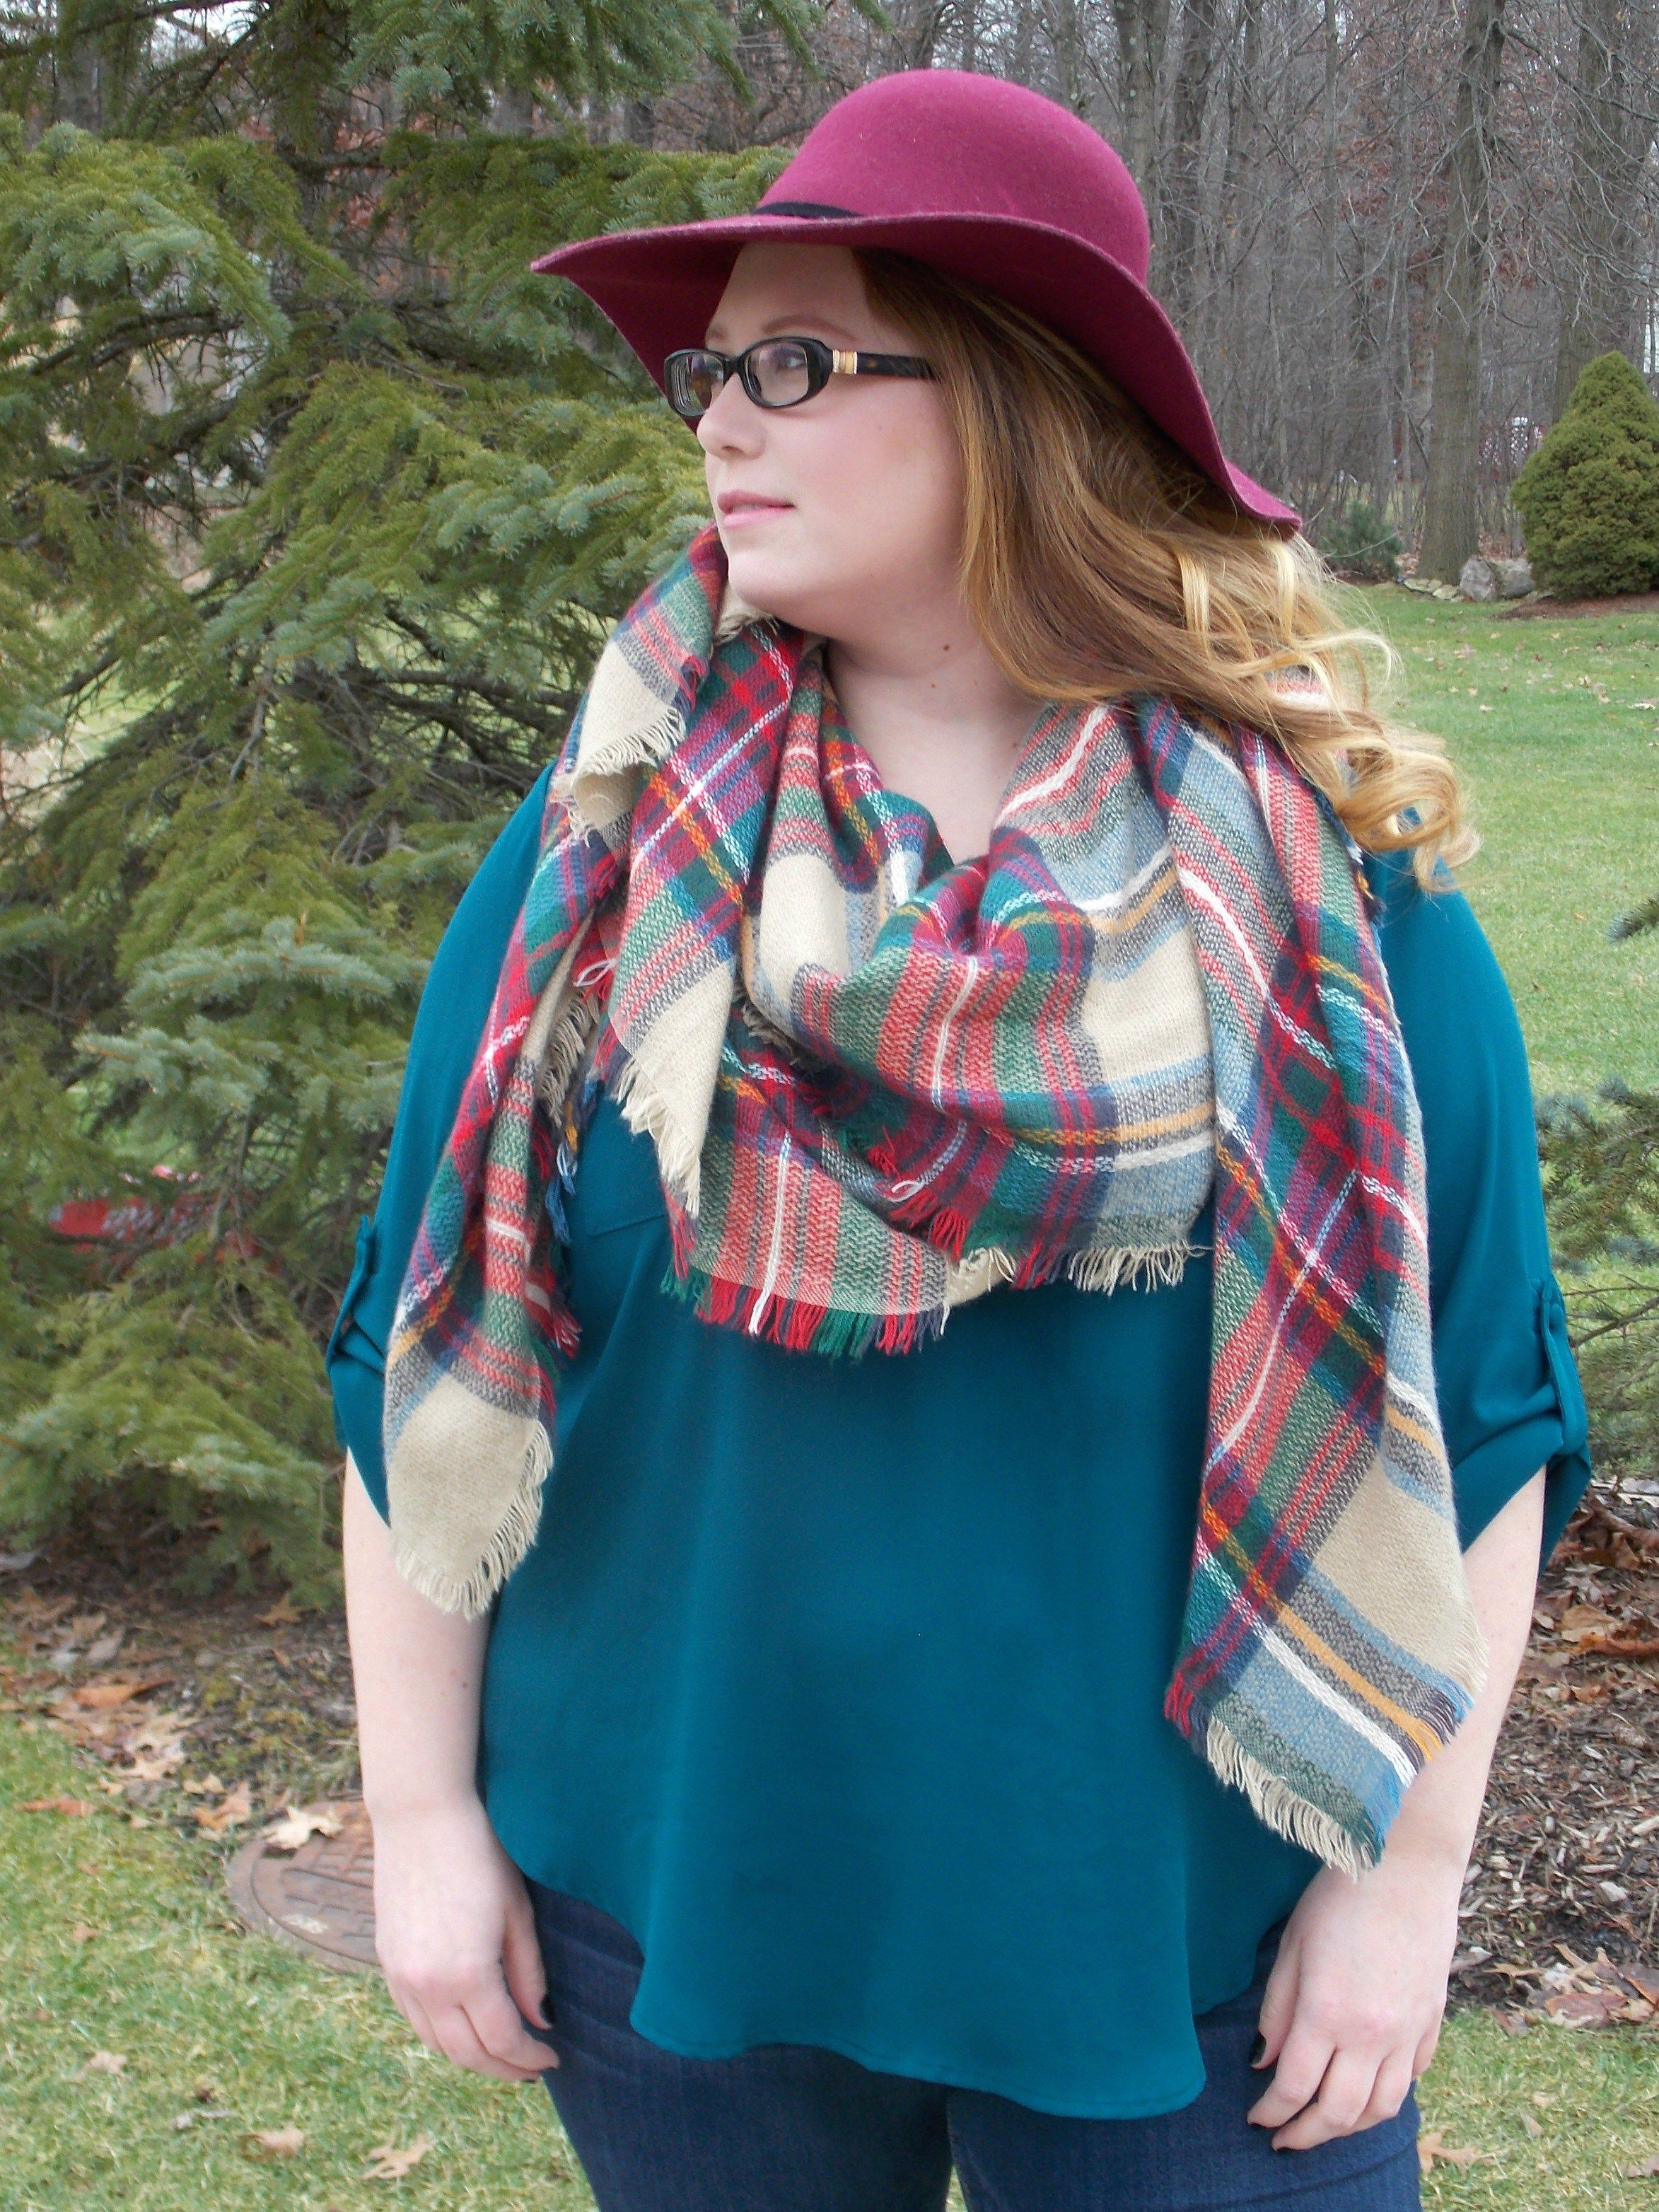 The Plus Size Diva Fashion is for every body